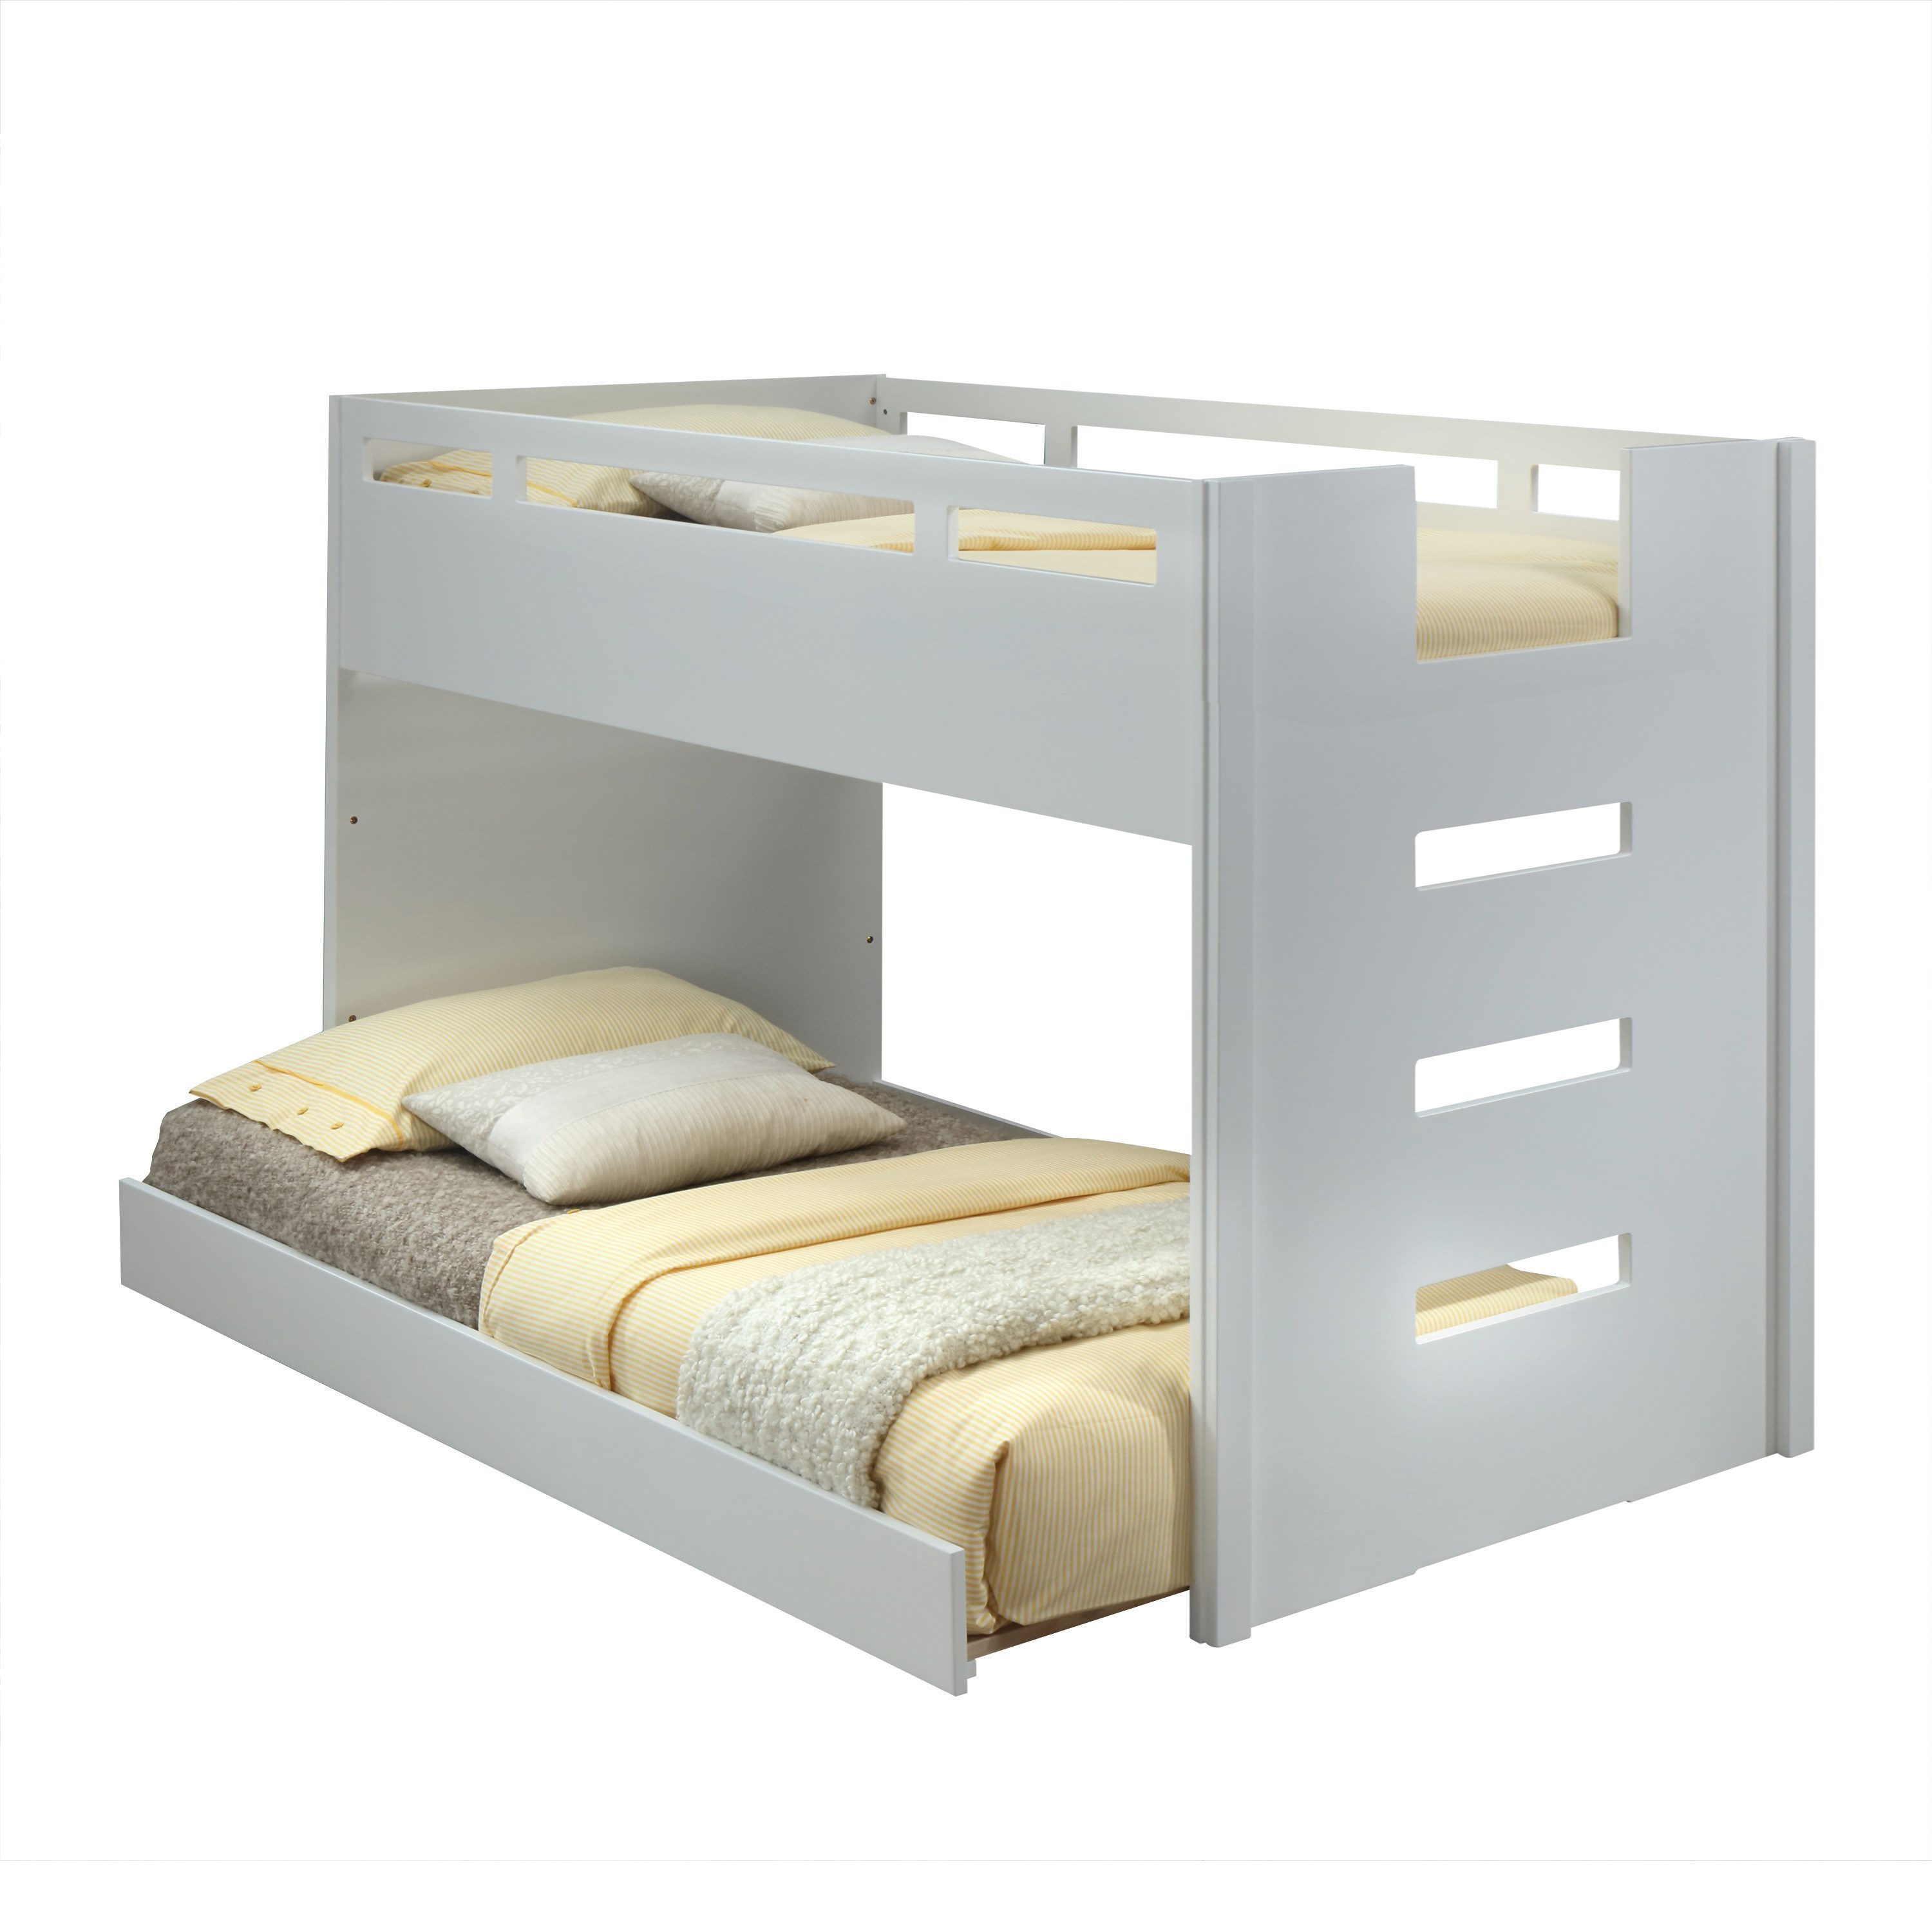 Outstanding Acme Furniture Deltana 37470 Contemporary Twin Loft Bed Pdpeps Interior Chair Design Pdpepsorg